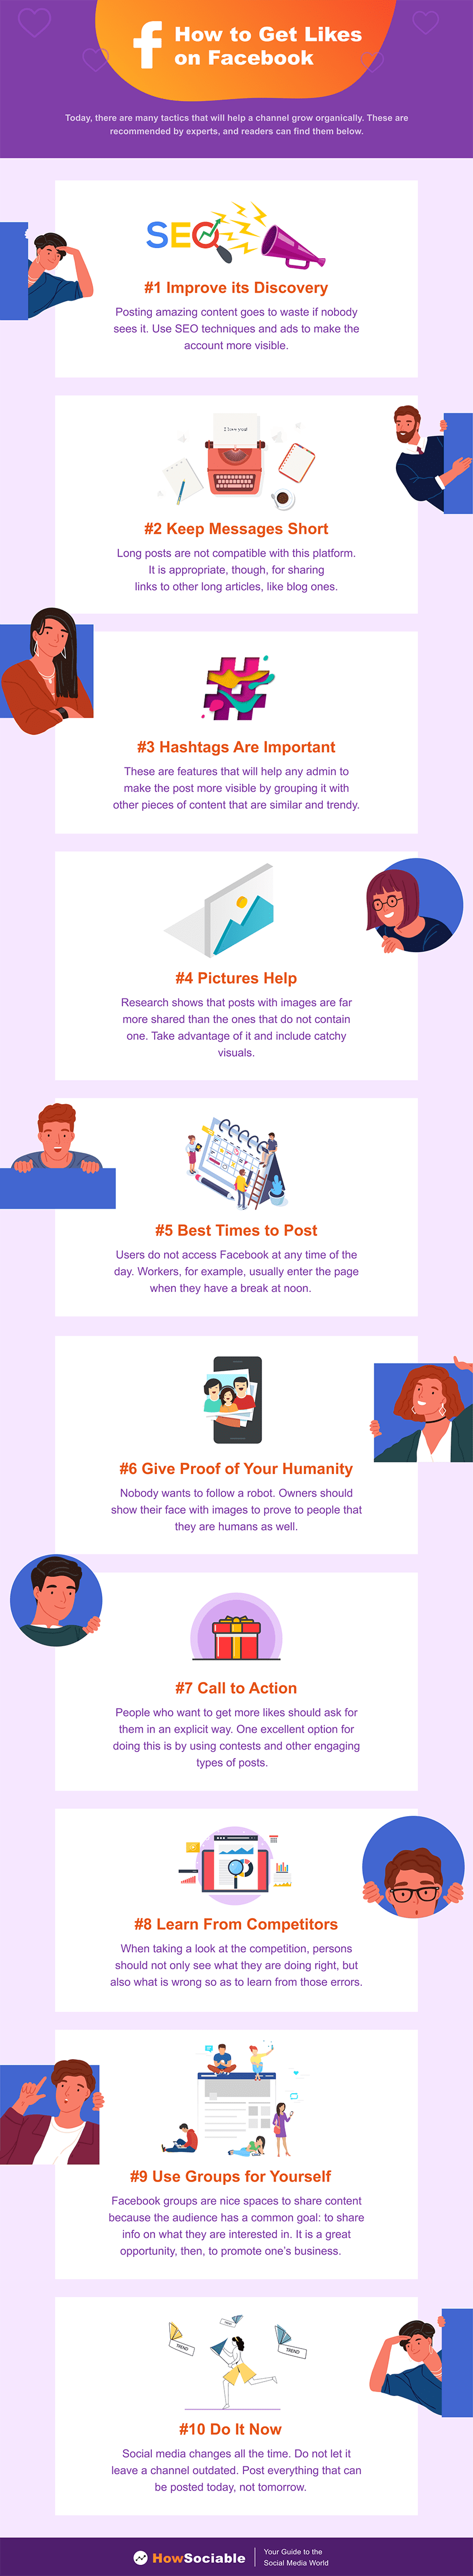 How to Get Likes on Facebook Infographic